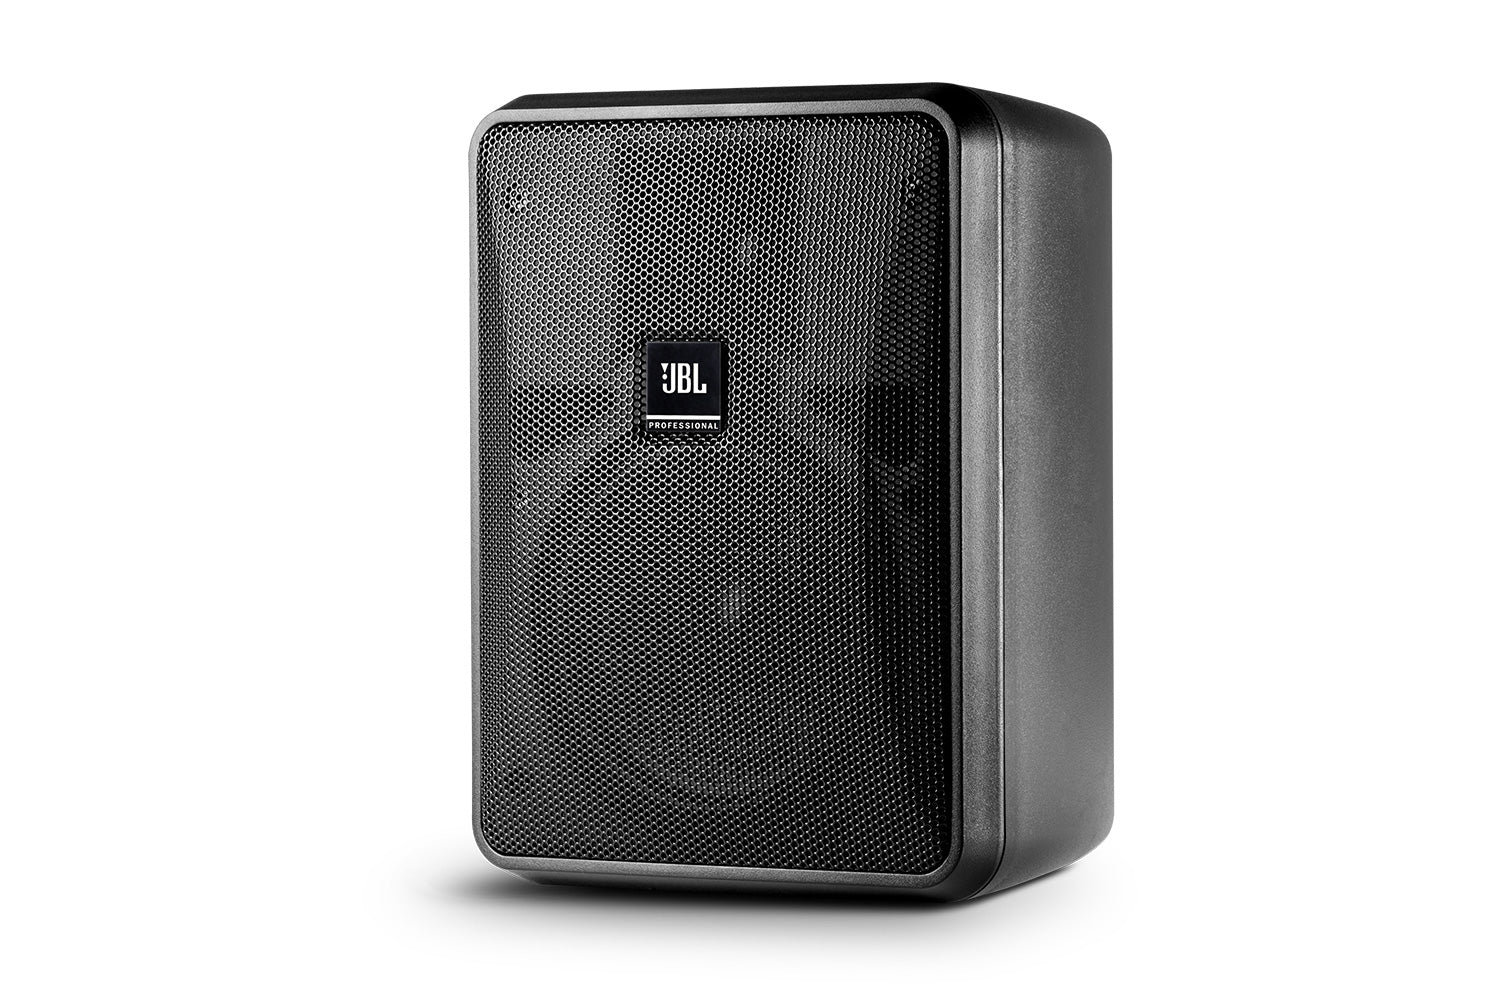 JBL Professional Compact Indoor/Outdoor Background/Foreground Speaker, White, Sold as Pair 25-1 - 305broadcast